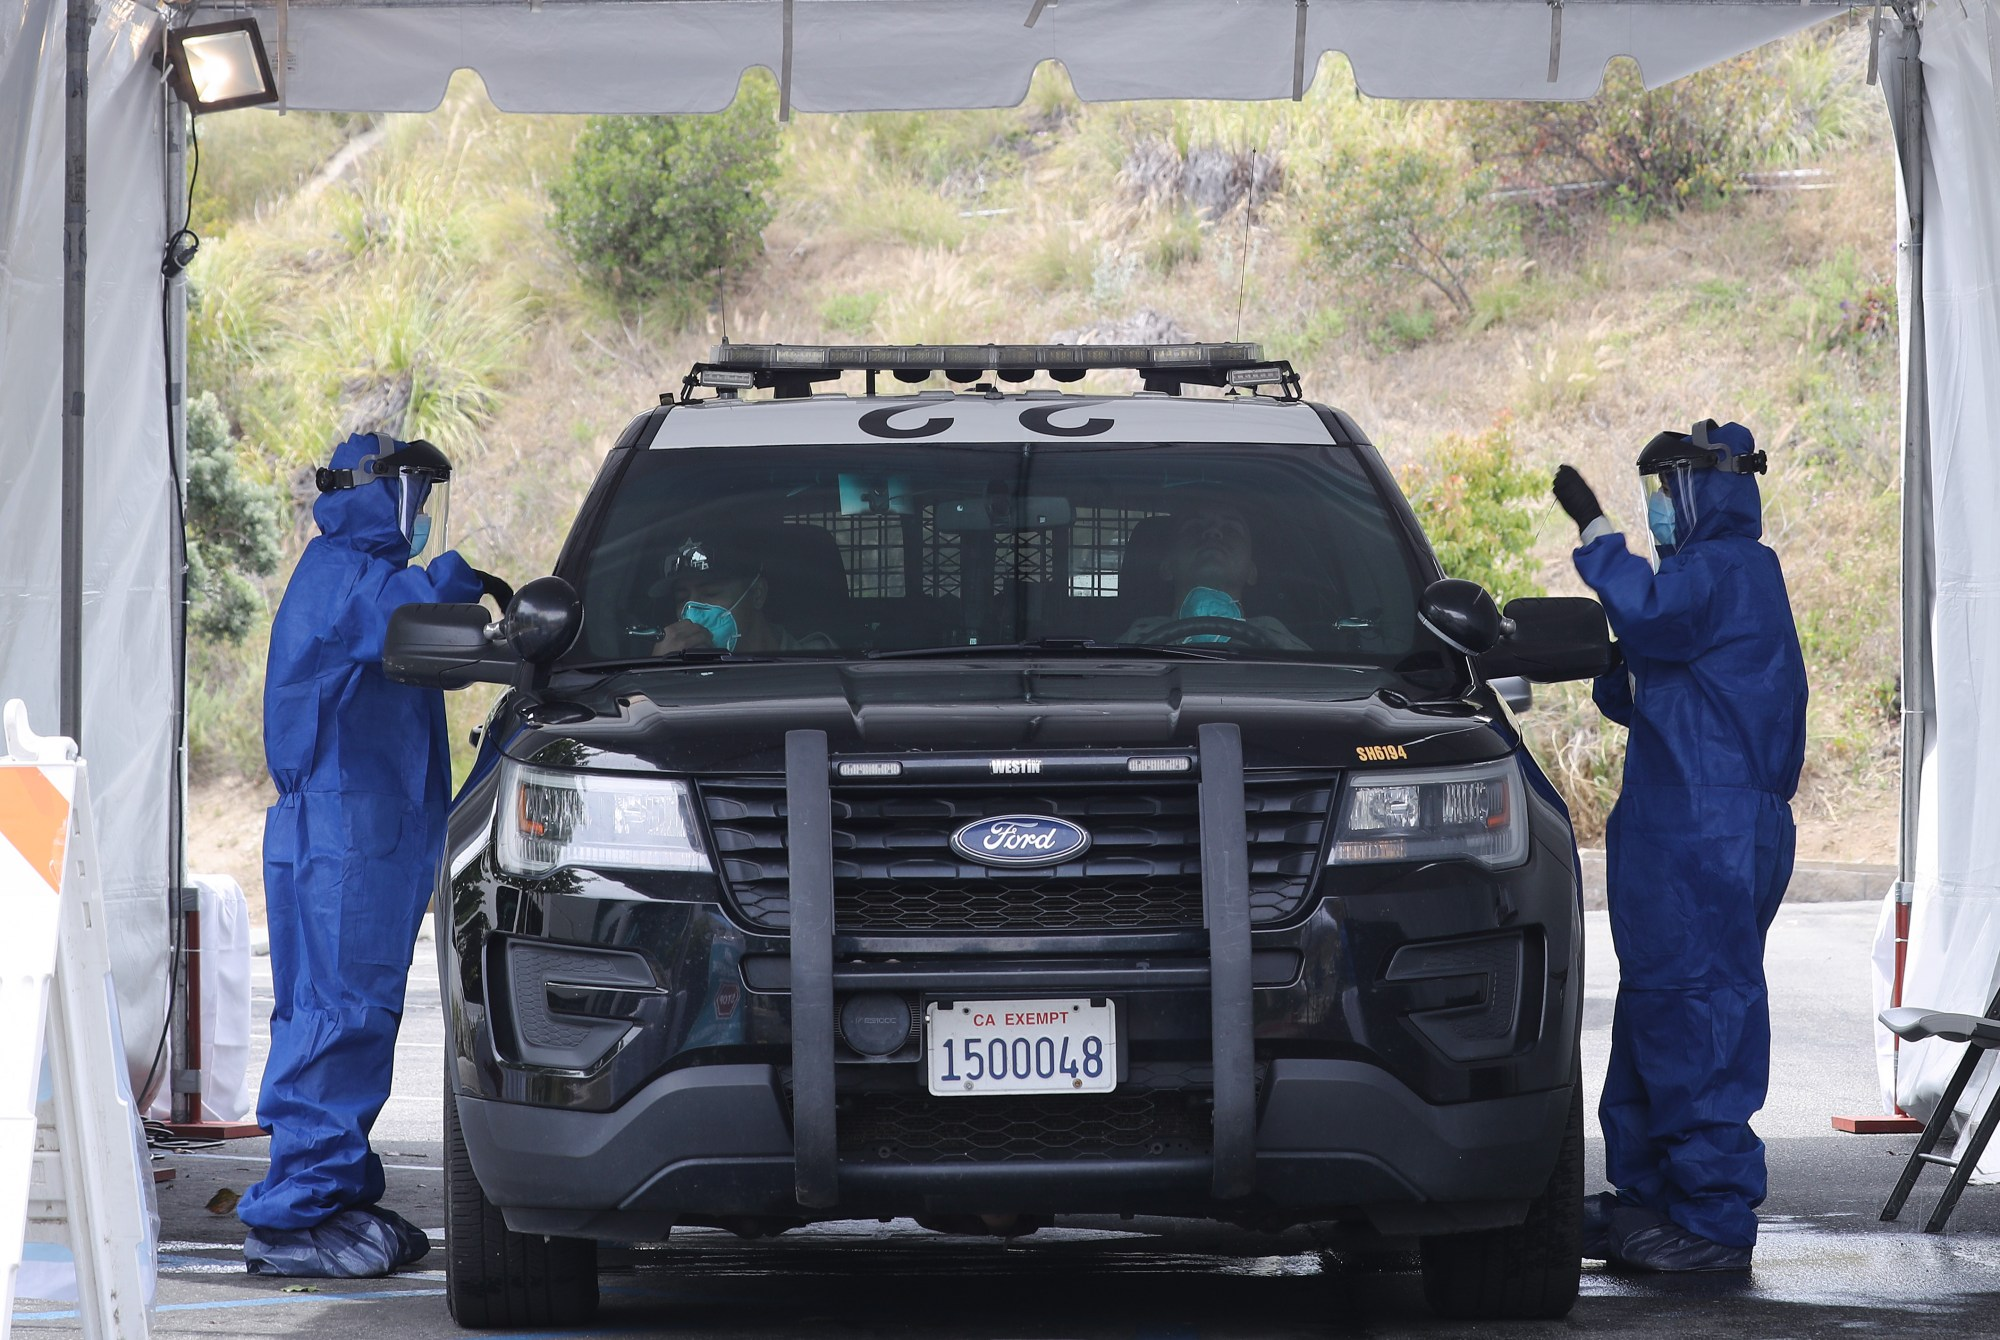 Volunteers in personal protective equipment conduct drive-through coronavirus testing with police officers at Malibu City Hall on April 8, 2020. (Mario Tama/Getty Images)